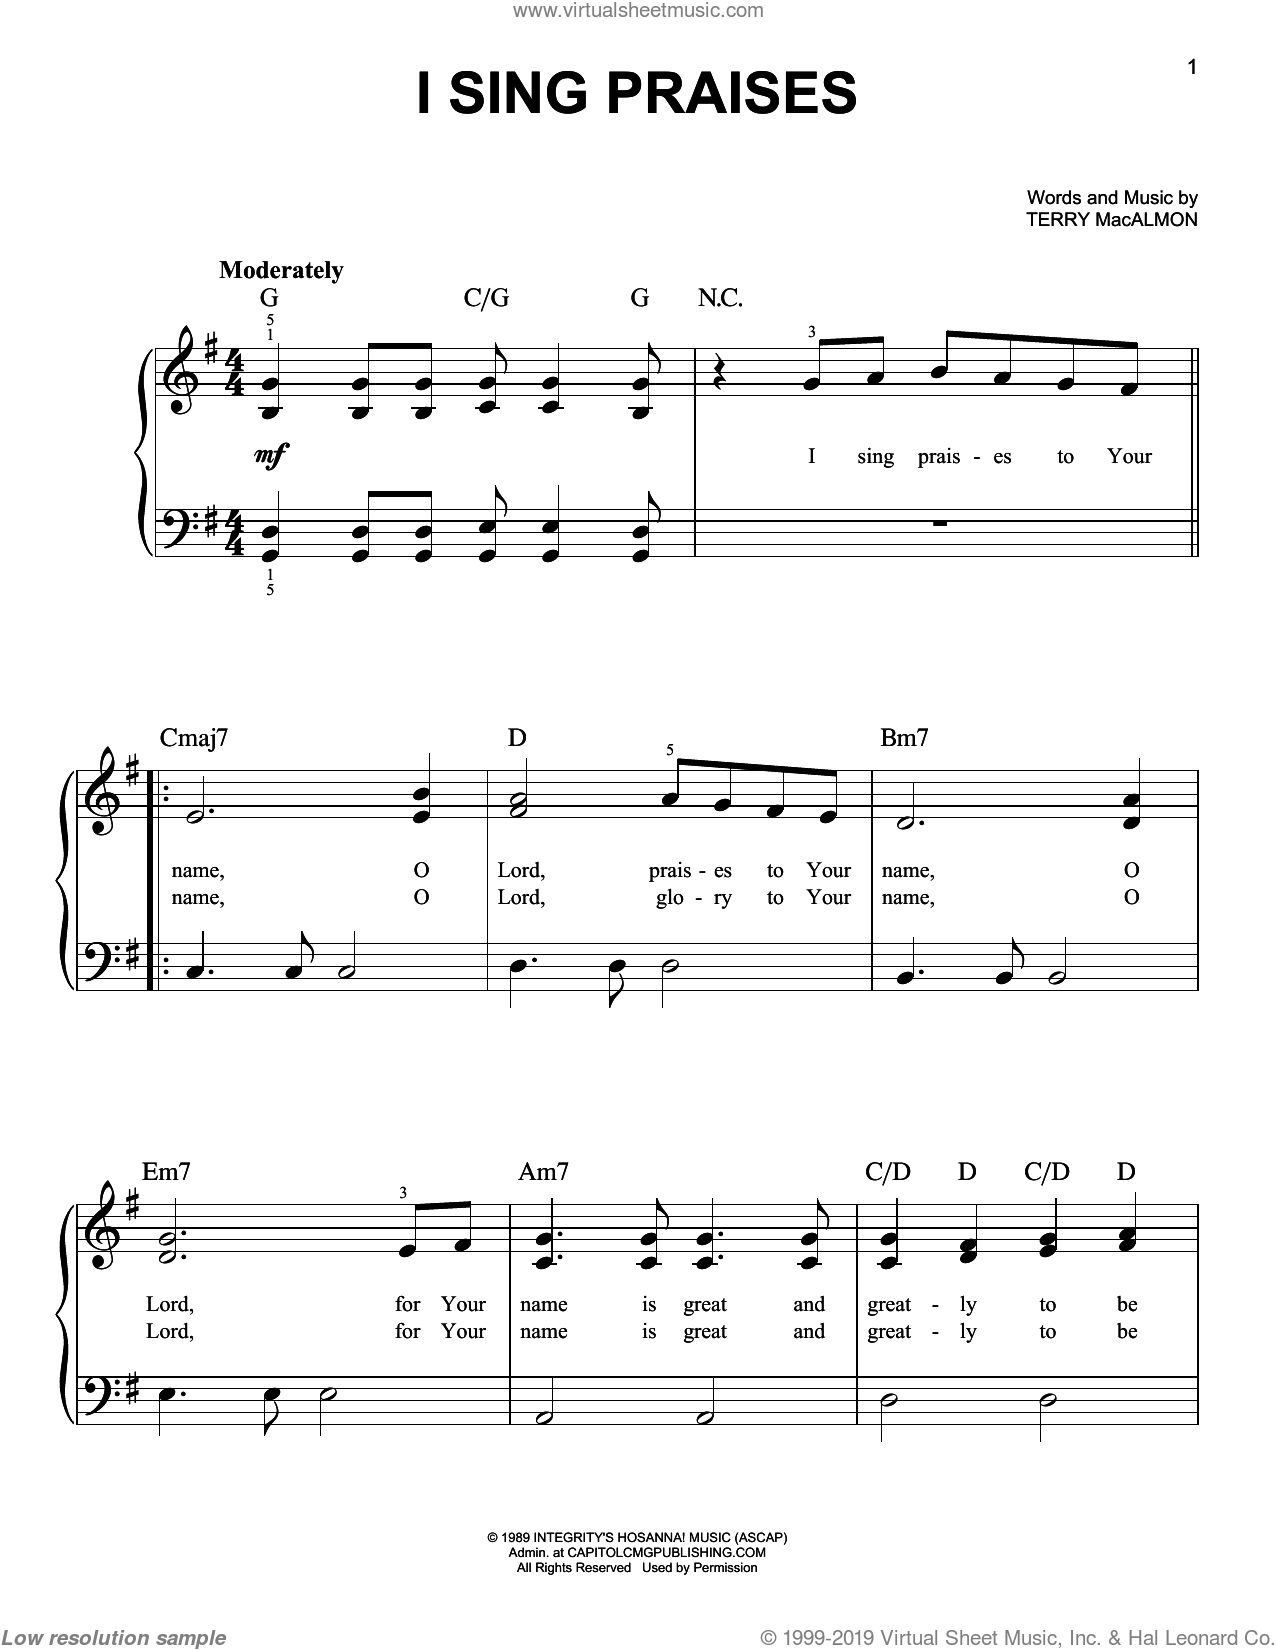 I Sing Praises sheet music for piano solo by Terry MacAlmon, easy skill level